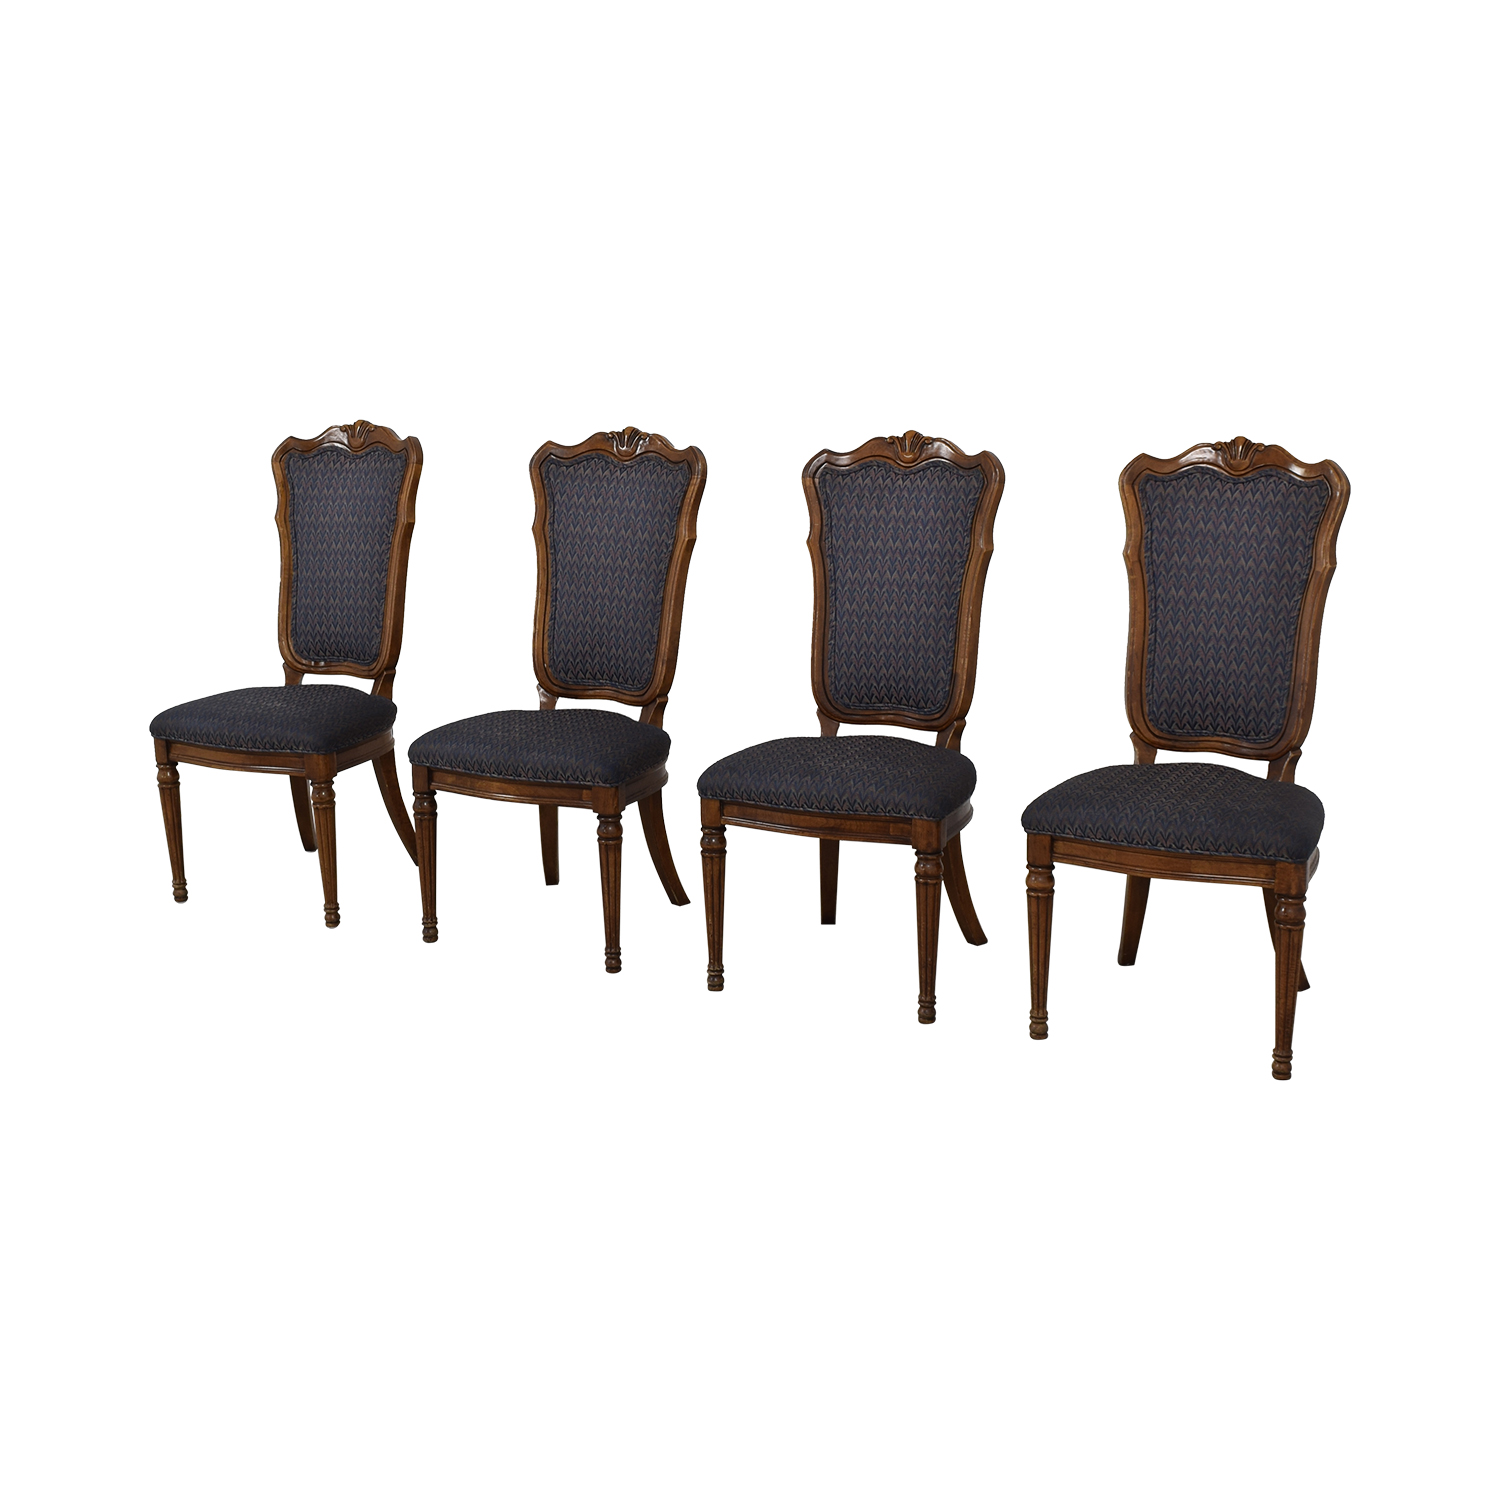 Printed Upholstered Dining Chairs used